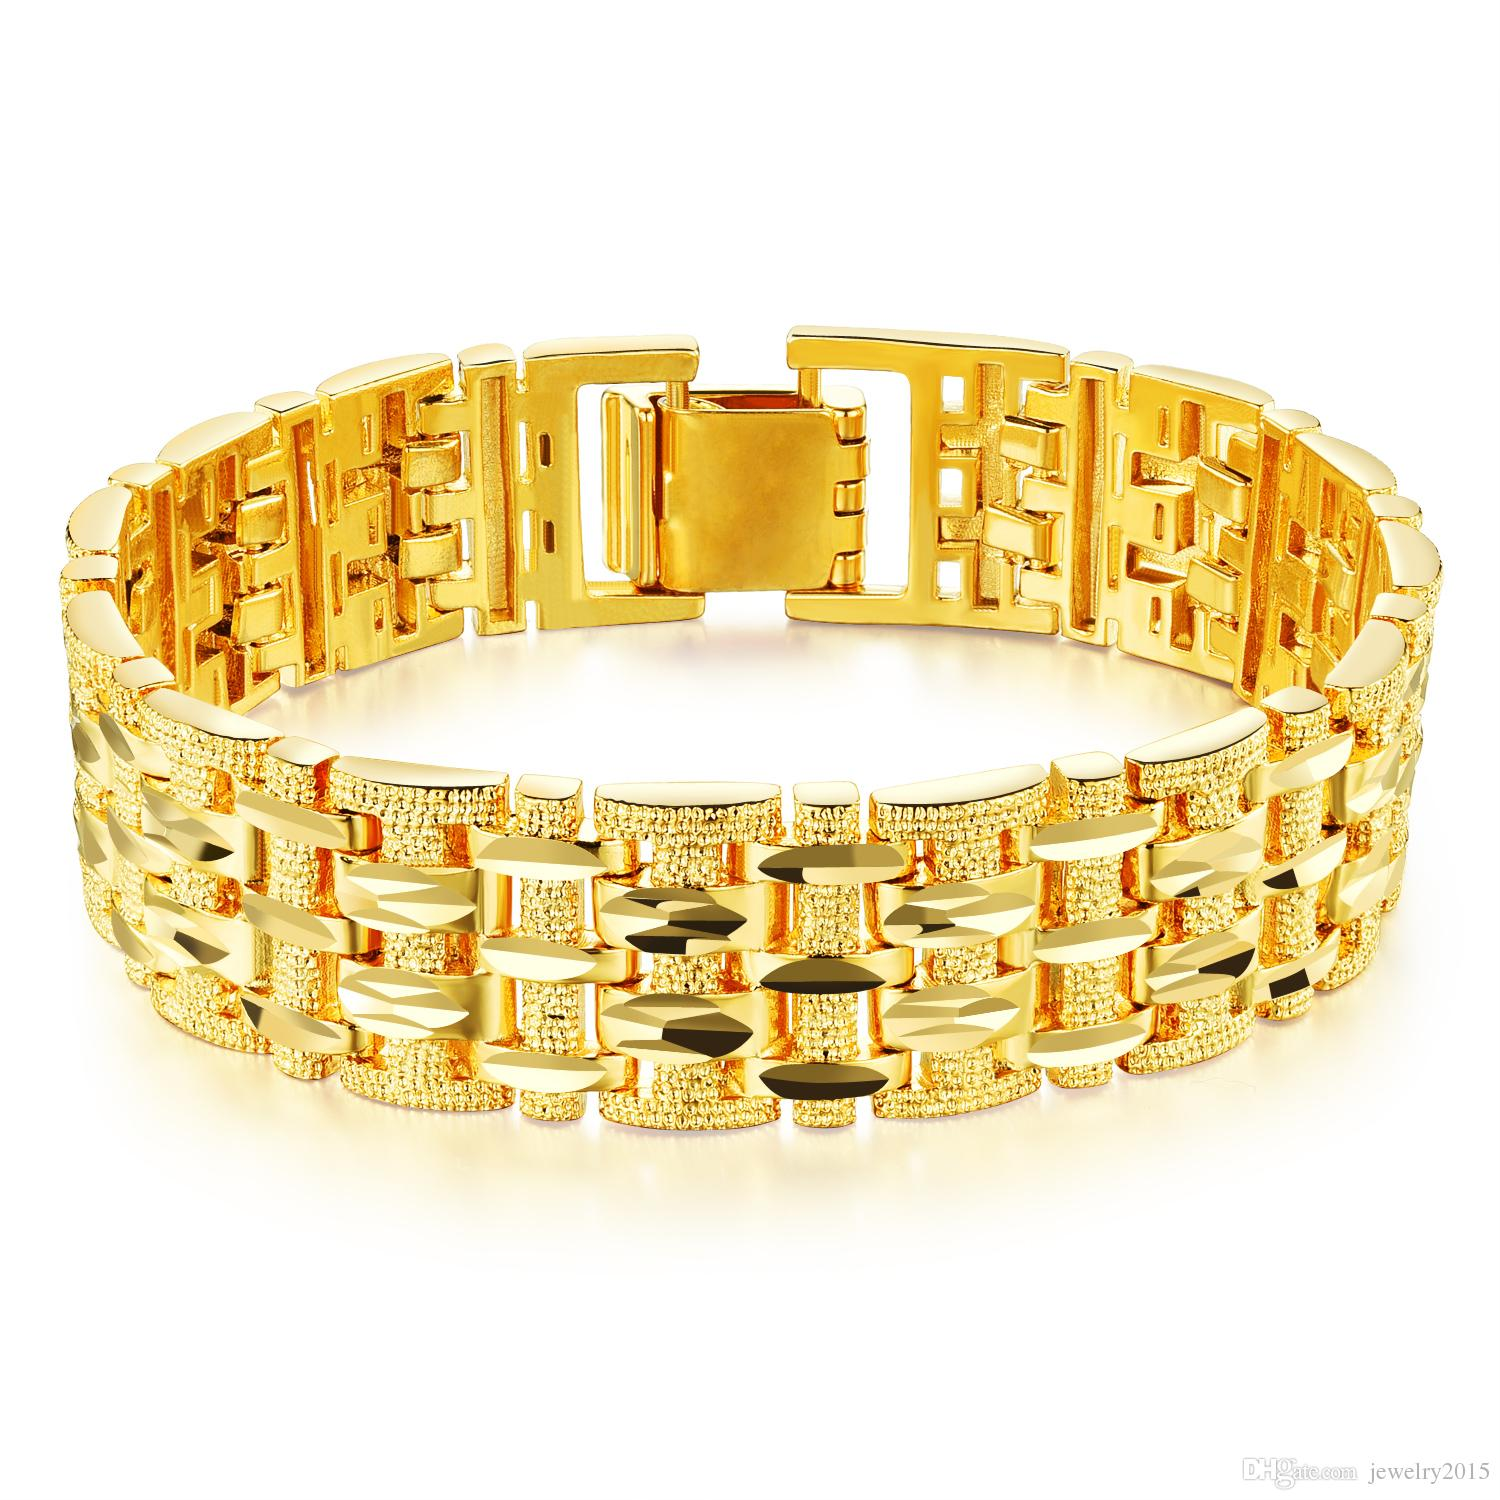 bangles handcrafted bracelet gold product simple jewelry manola truth plated